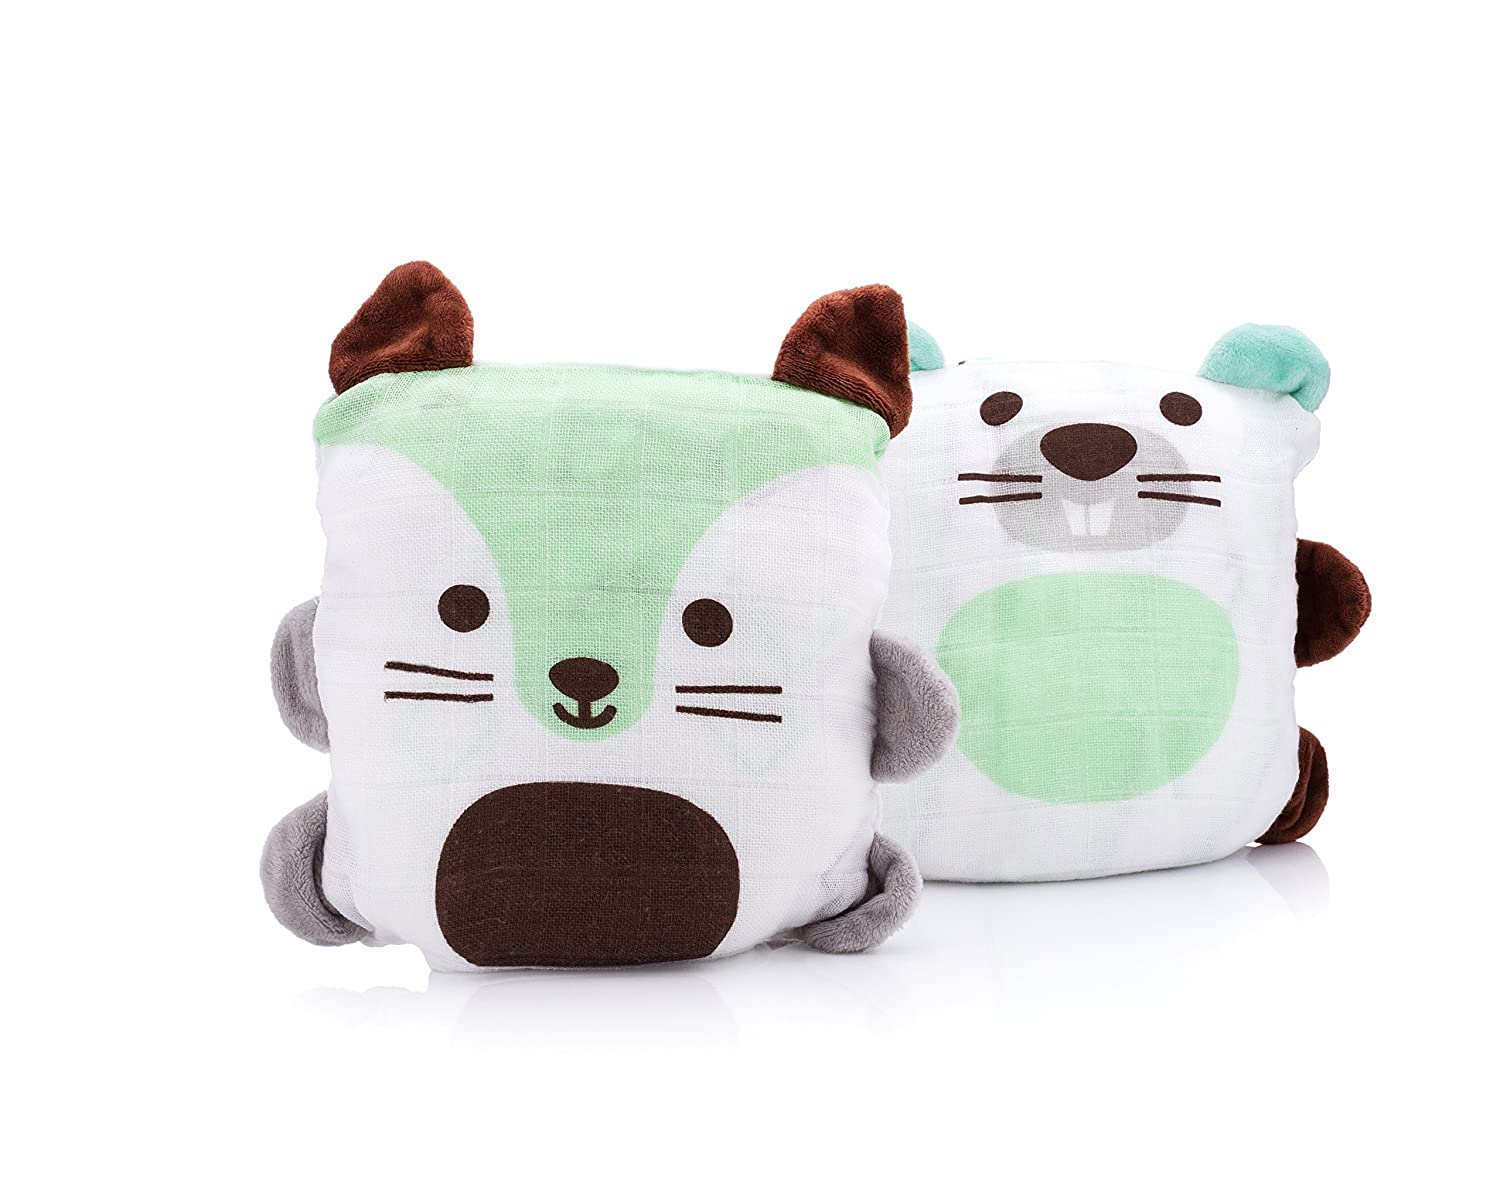 Ubbi 2-in-1 Convertible Baby Pillow and Cotton Blanket, Cat/Dog 10702